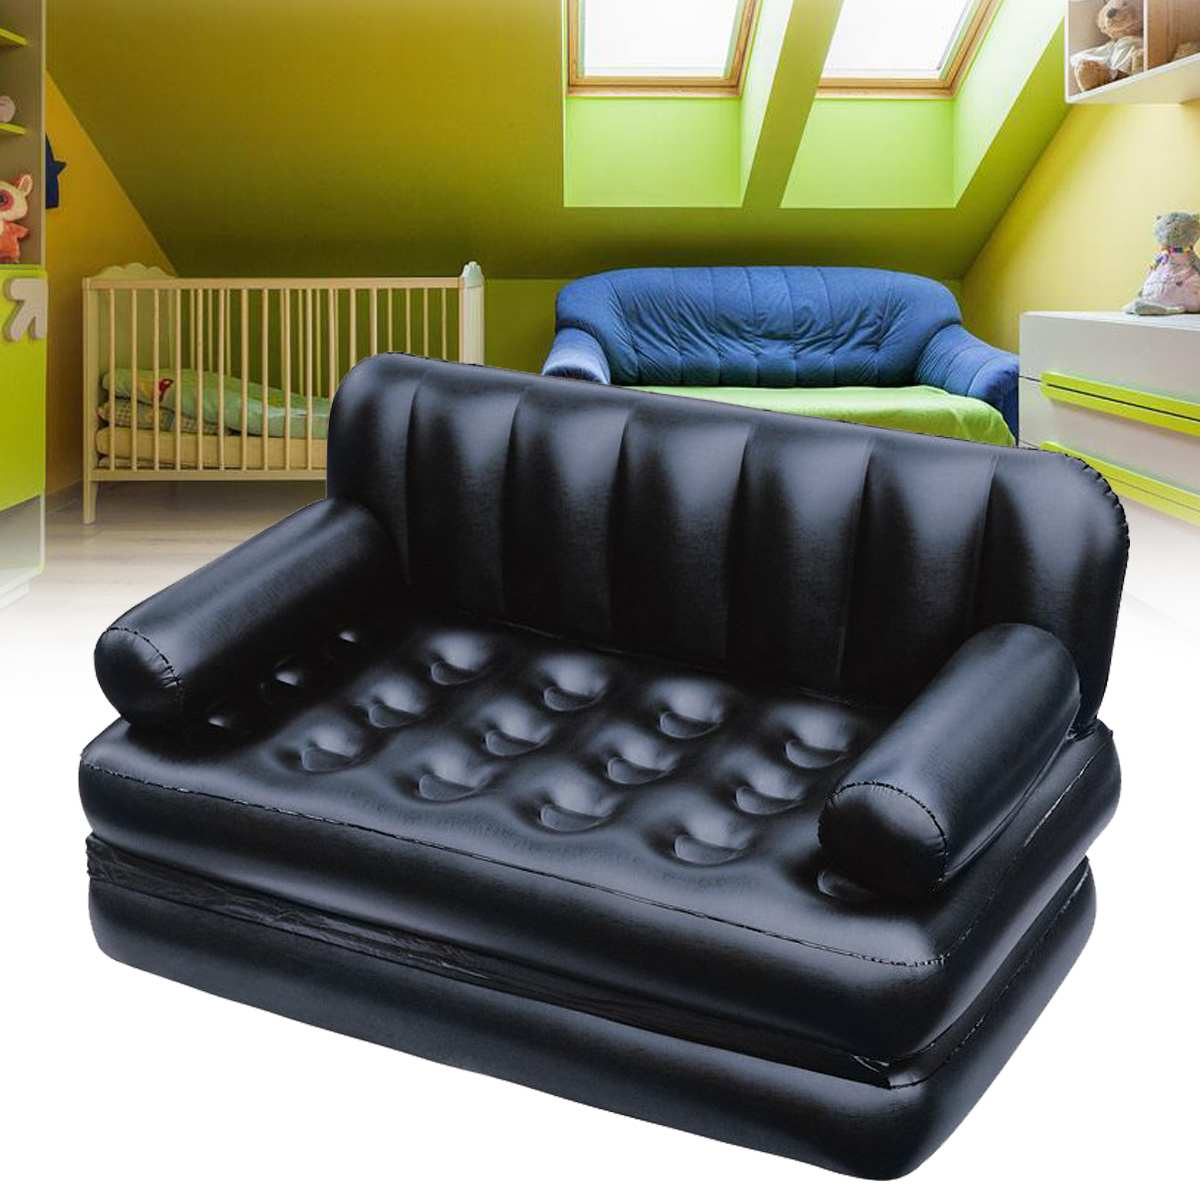 Large Inflatable Garden Sofa Lounge Blow Up Double Air Bed ...